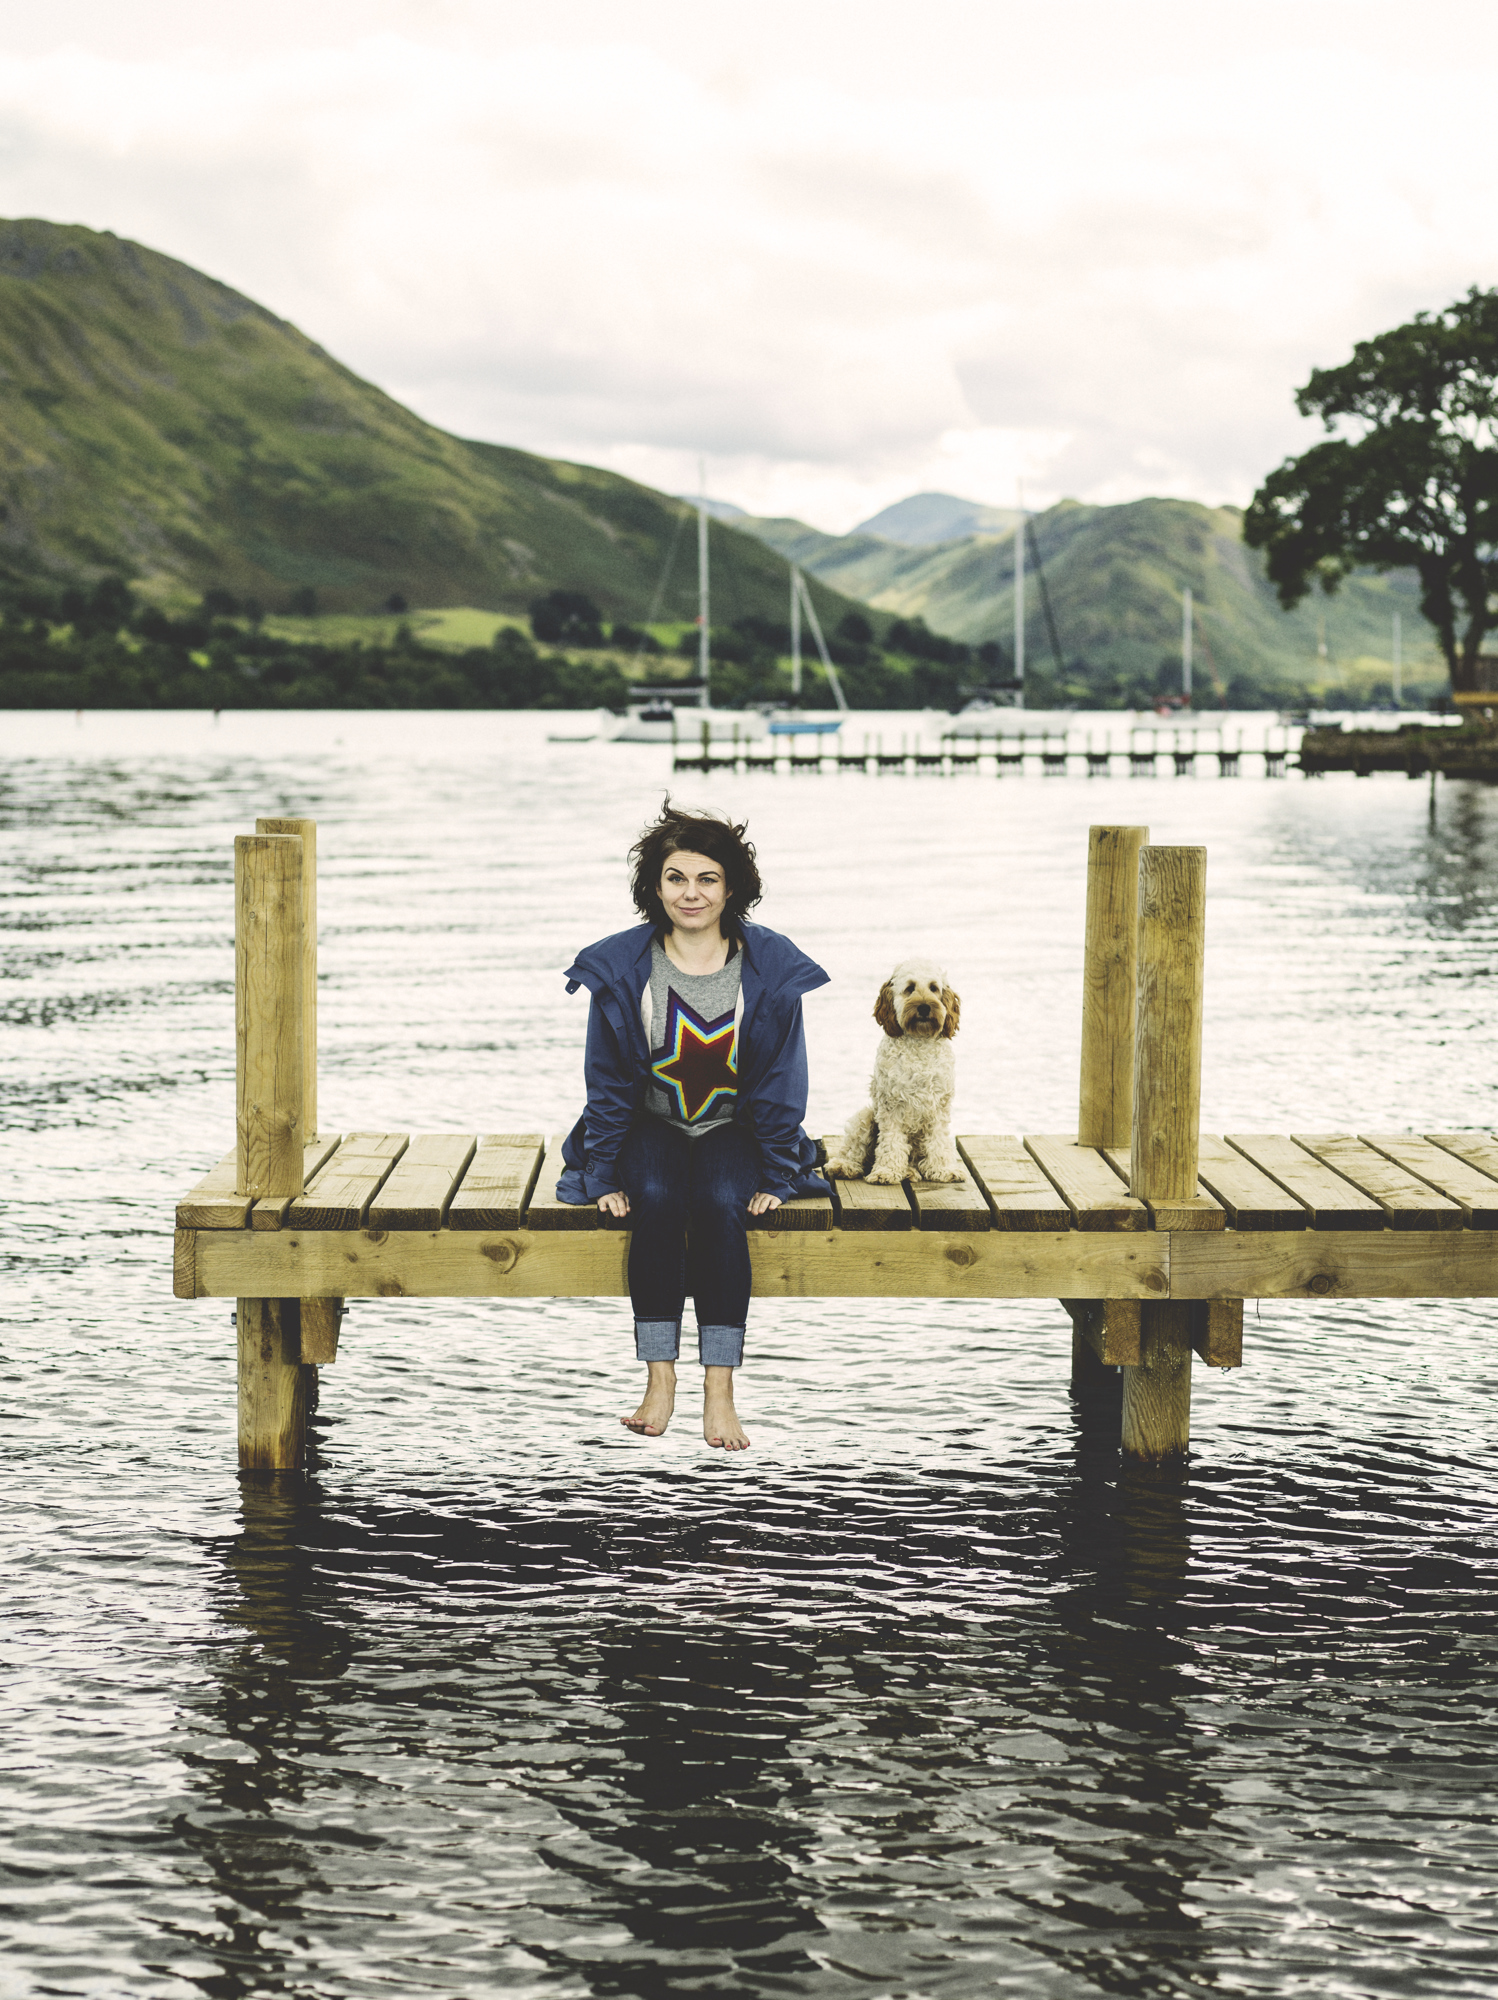 caitlin moran and dog sit on the pier of Another Place, the Lake, Ullswater for The Times.